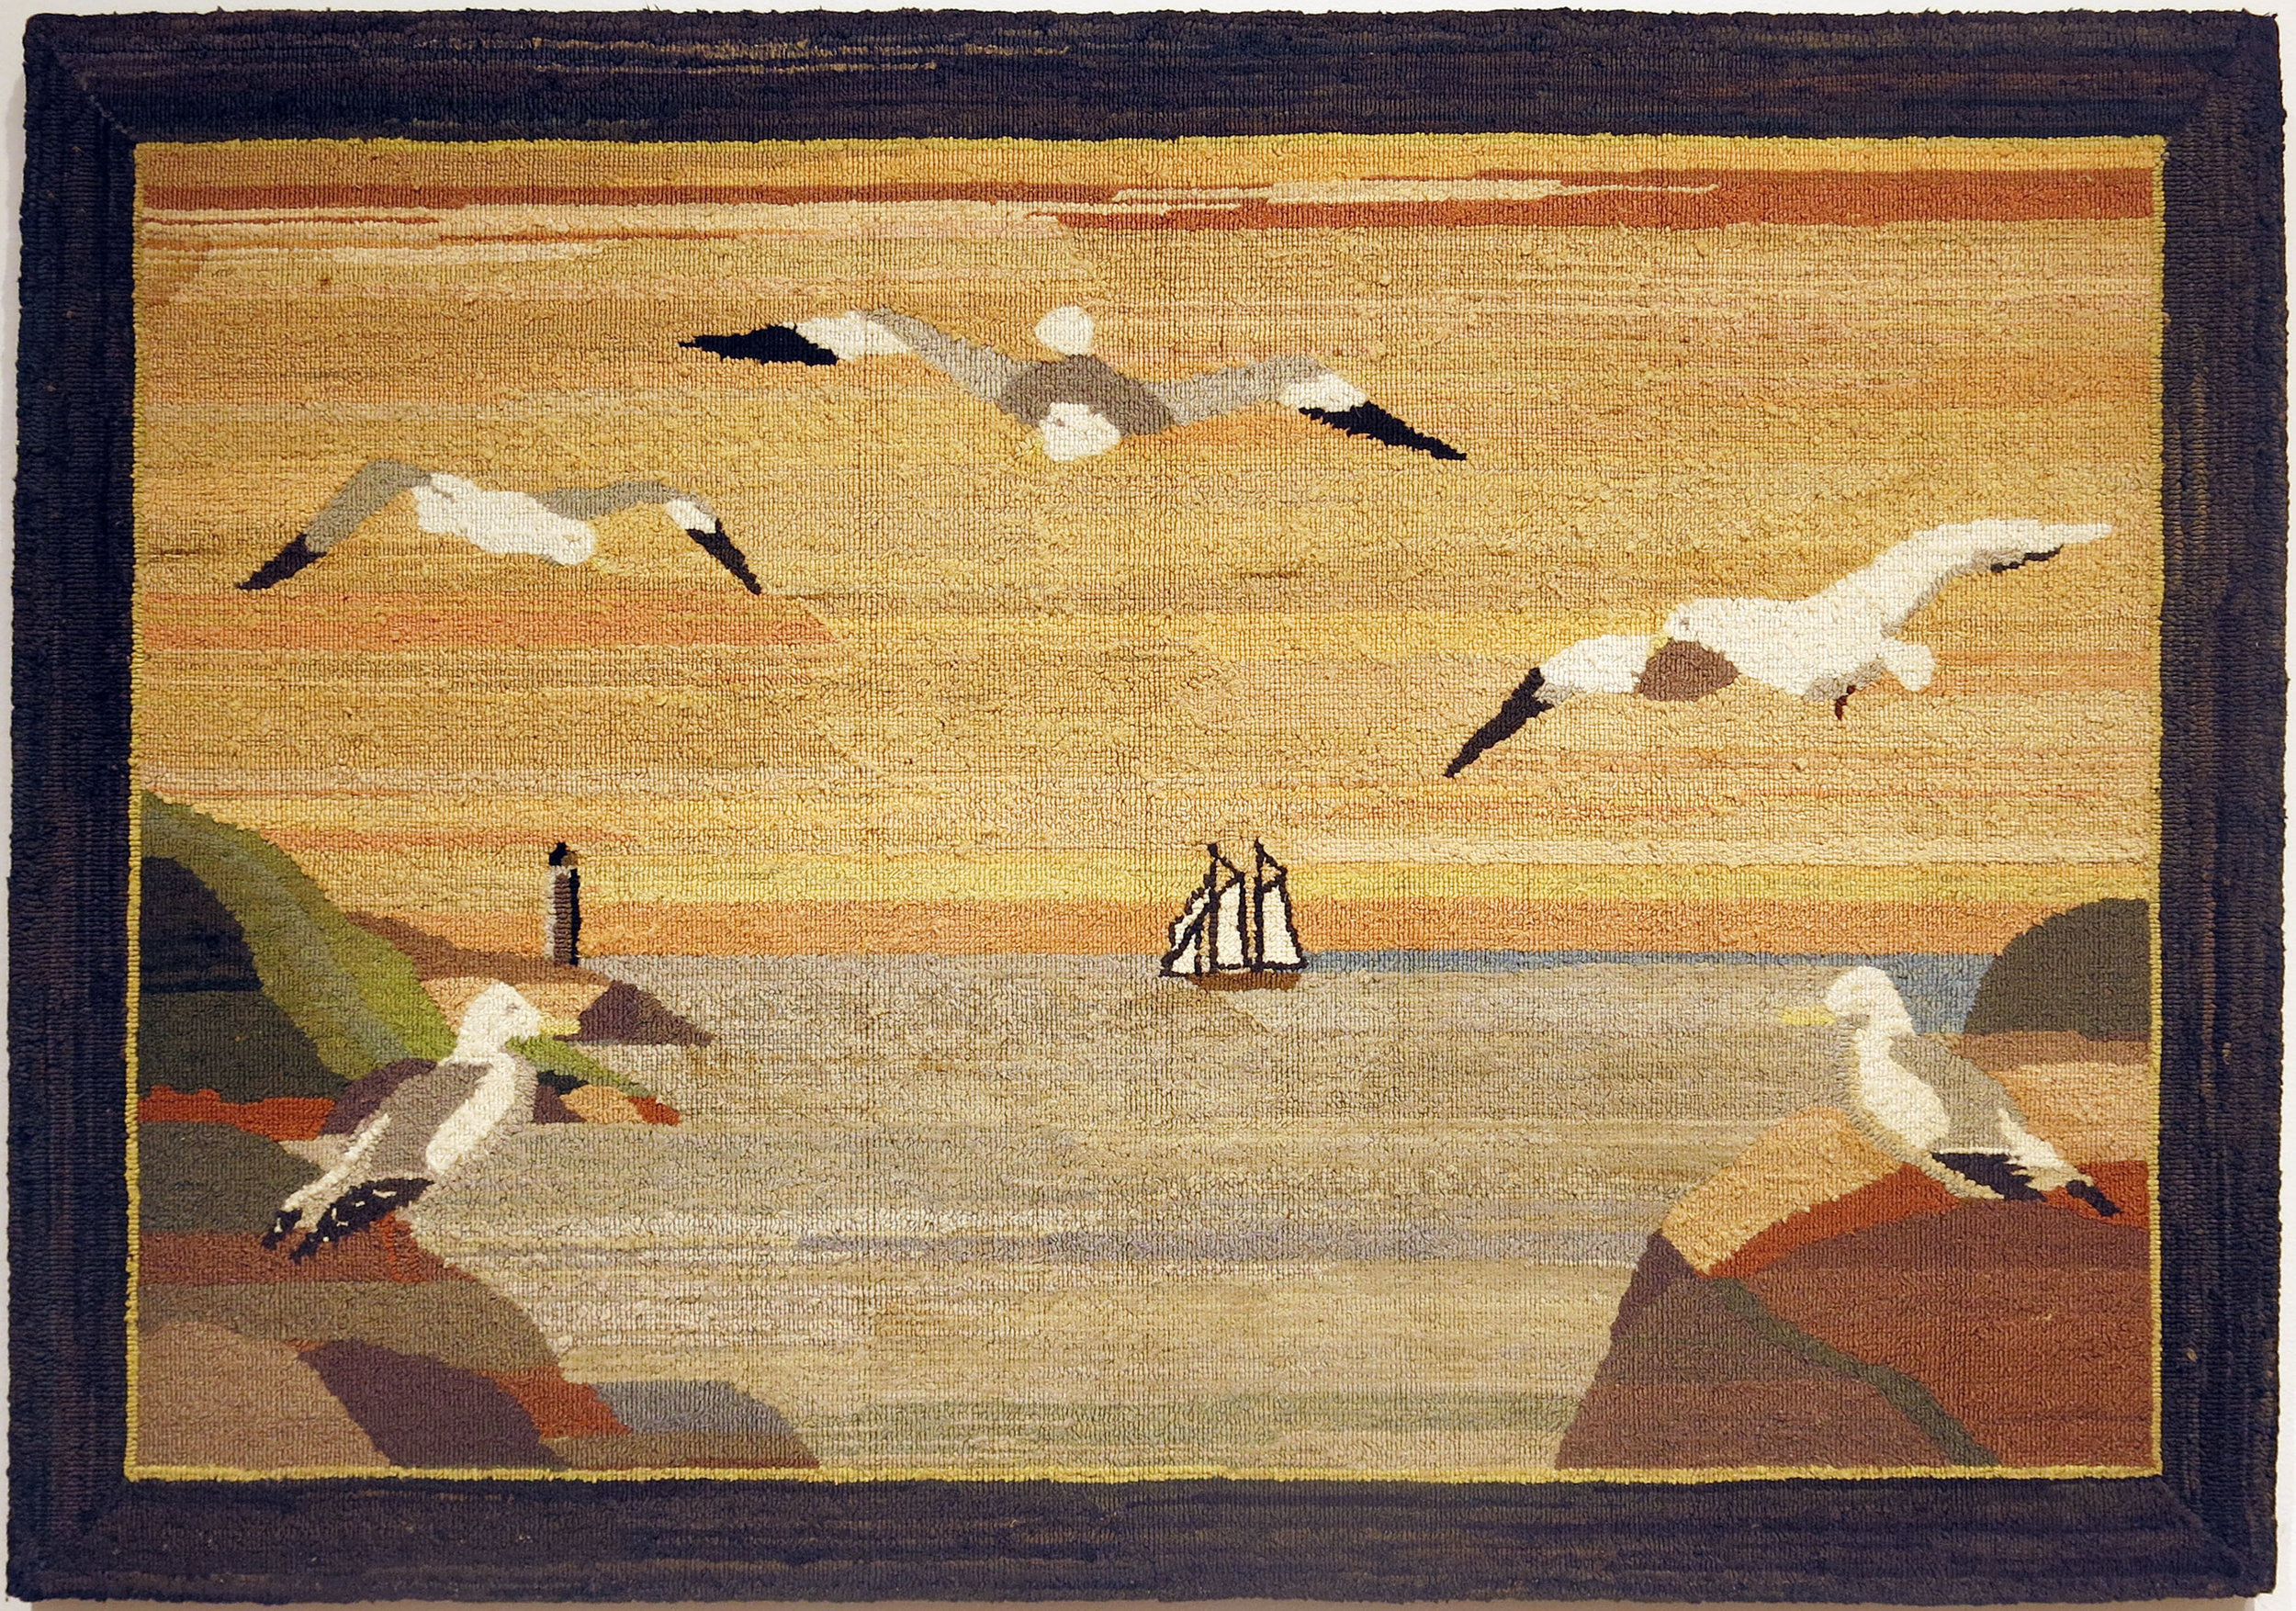 Anonymous, The Grenfell Mission,  Panoramic View of Harbor with Boat and Gulls,  c. 1935, silk, rayon; dyed, 27h x 40w in.